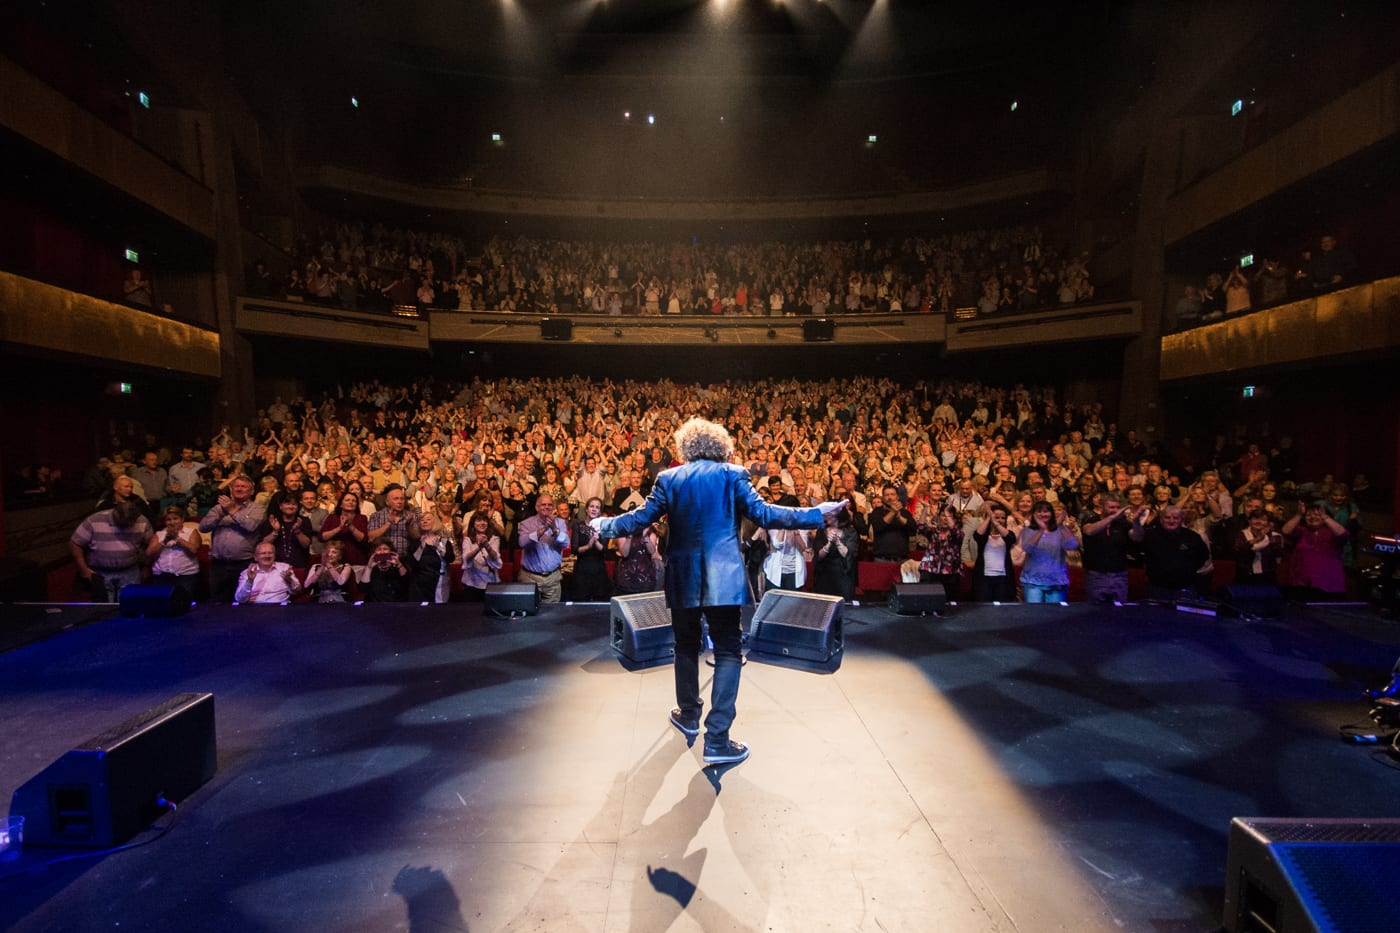 Leo Sayer at Bord Gais Energy Theatre by Sean Smyth (16-10-15) (120 of 129)